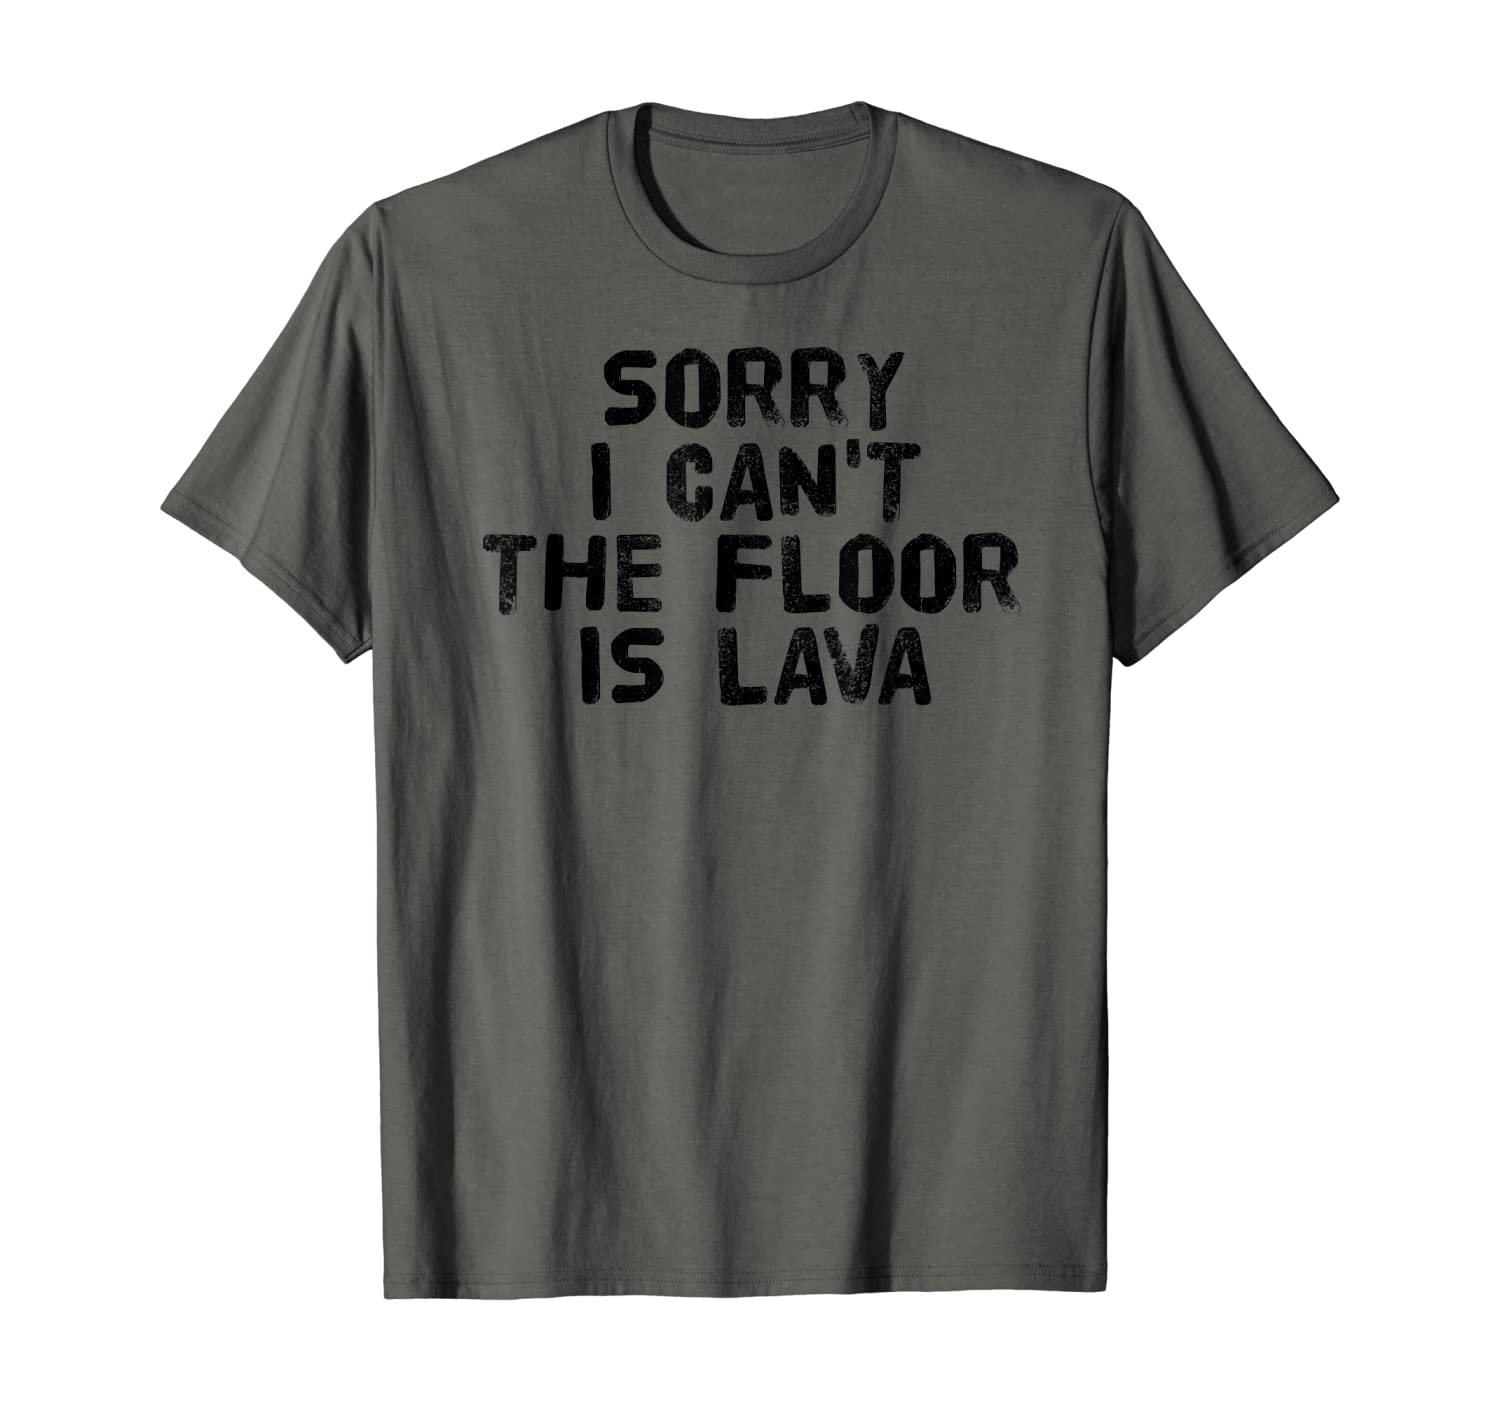 SORRY I CAN'T THE FLOOR IS LAVA Shirt Funny Game Gift Idea